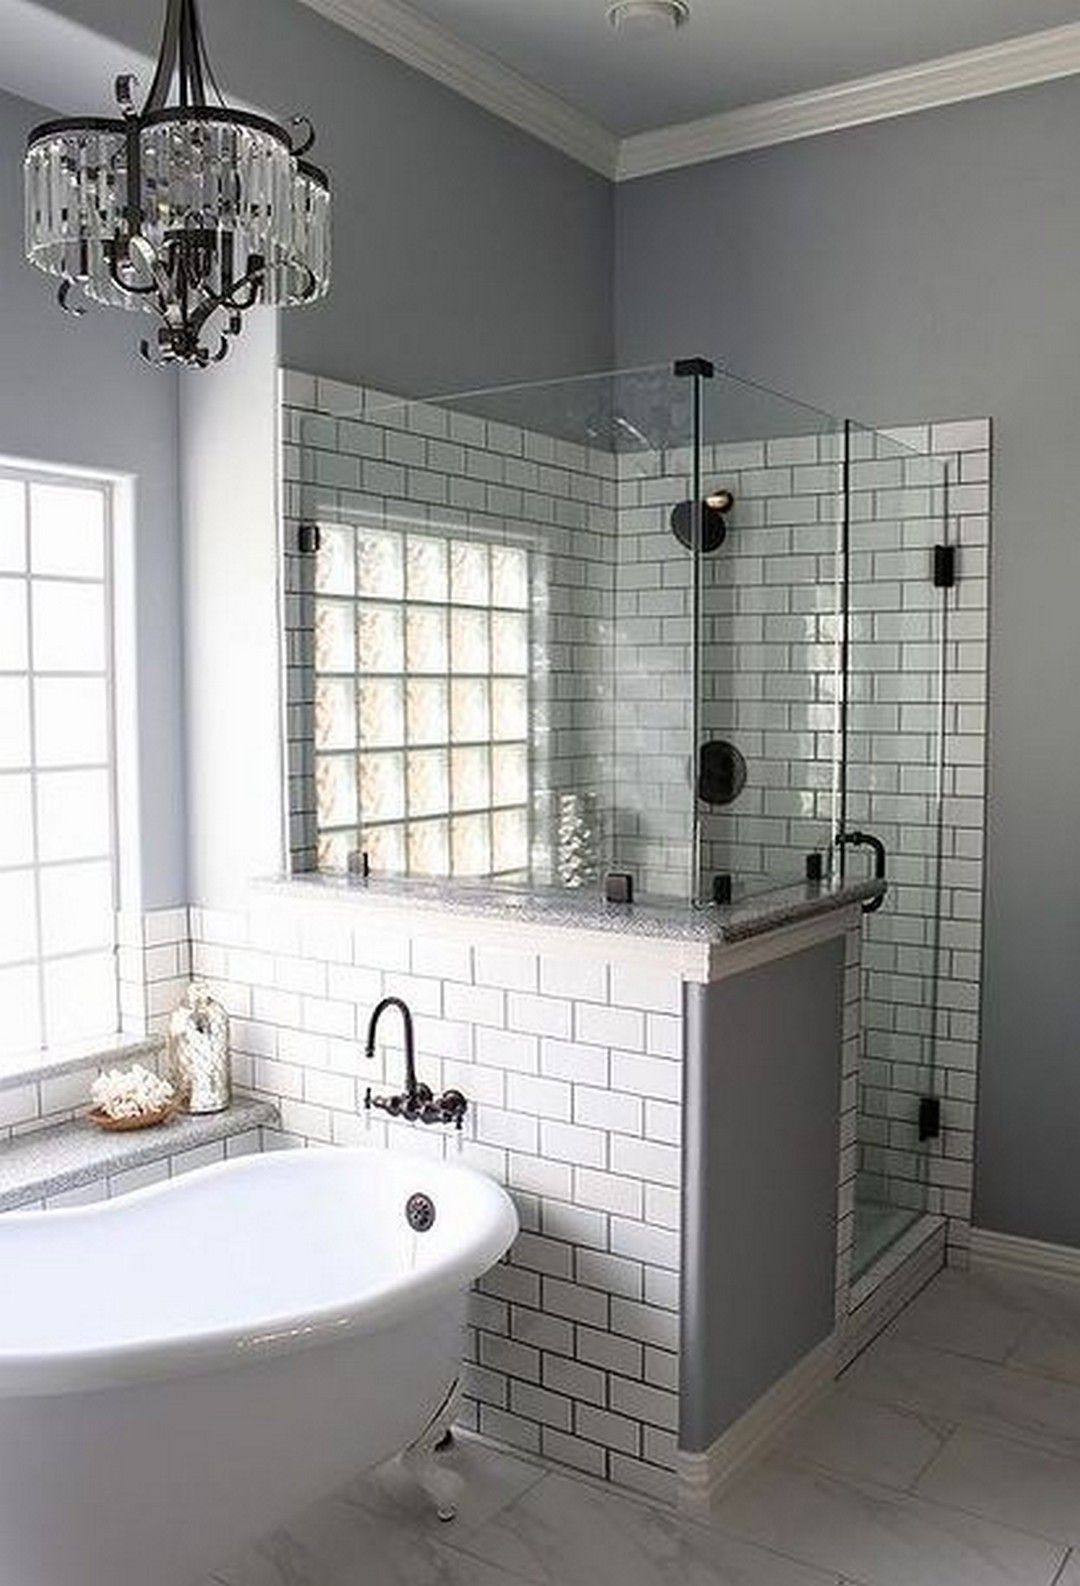 How Much Budget Bathroom Remodel You Need  Urban Farmhouse Entrancing Average Master Bathroom Remodel Cost 2018